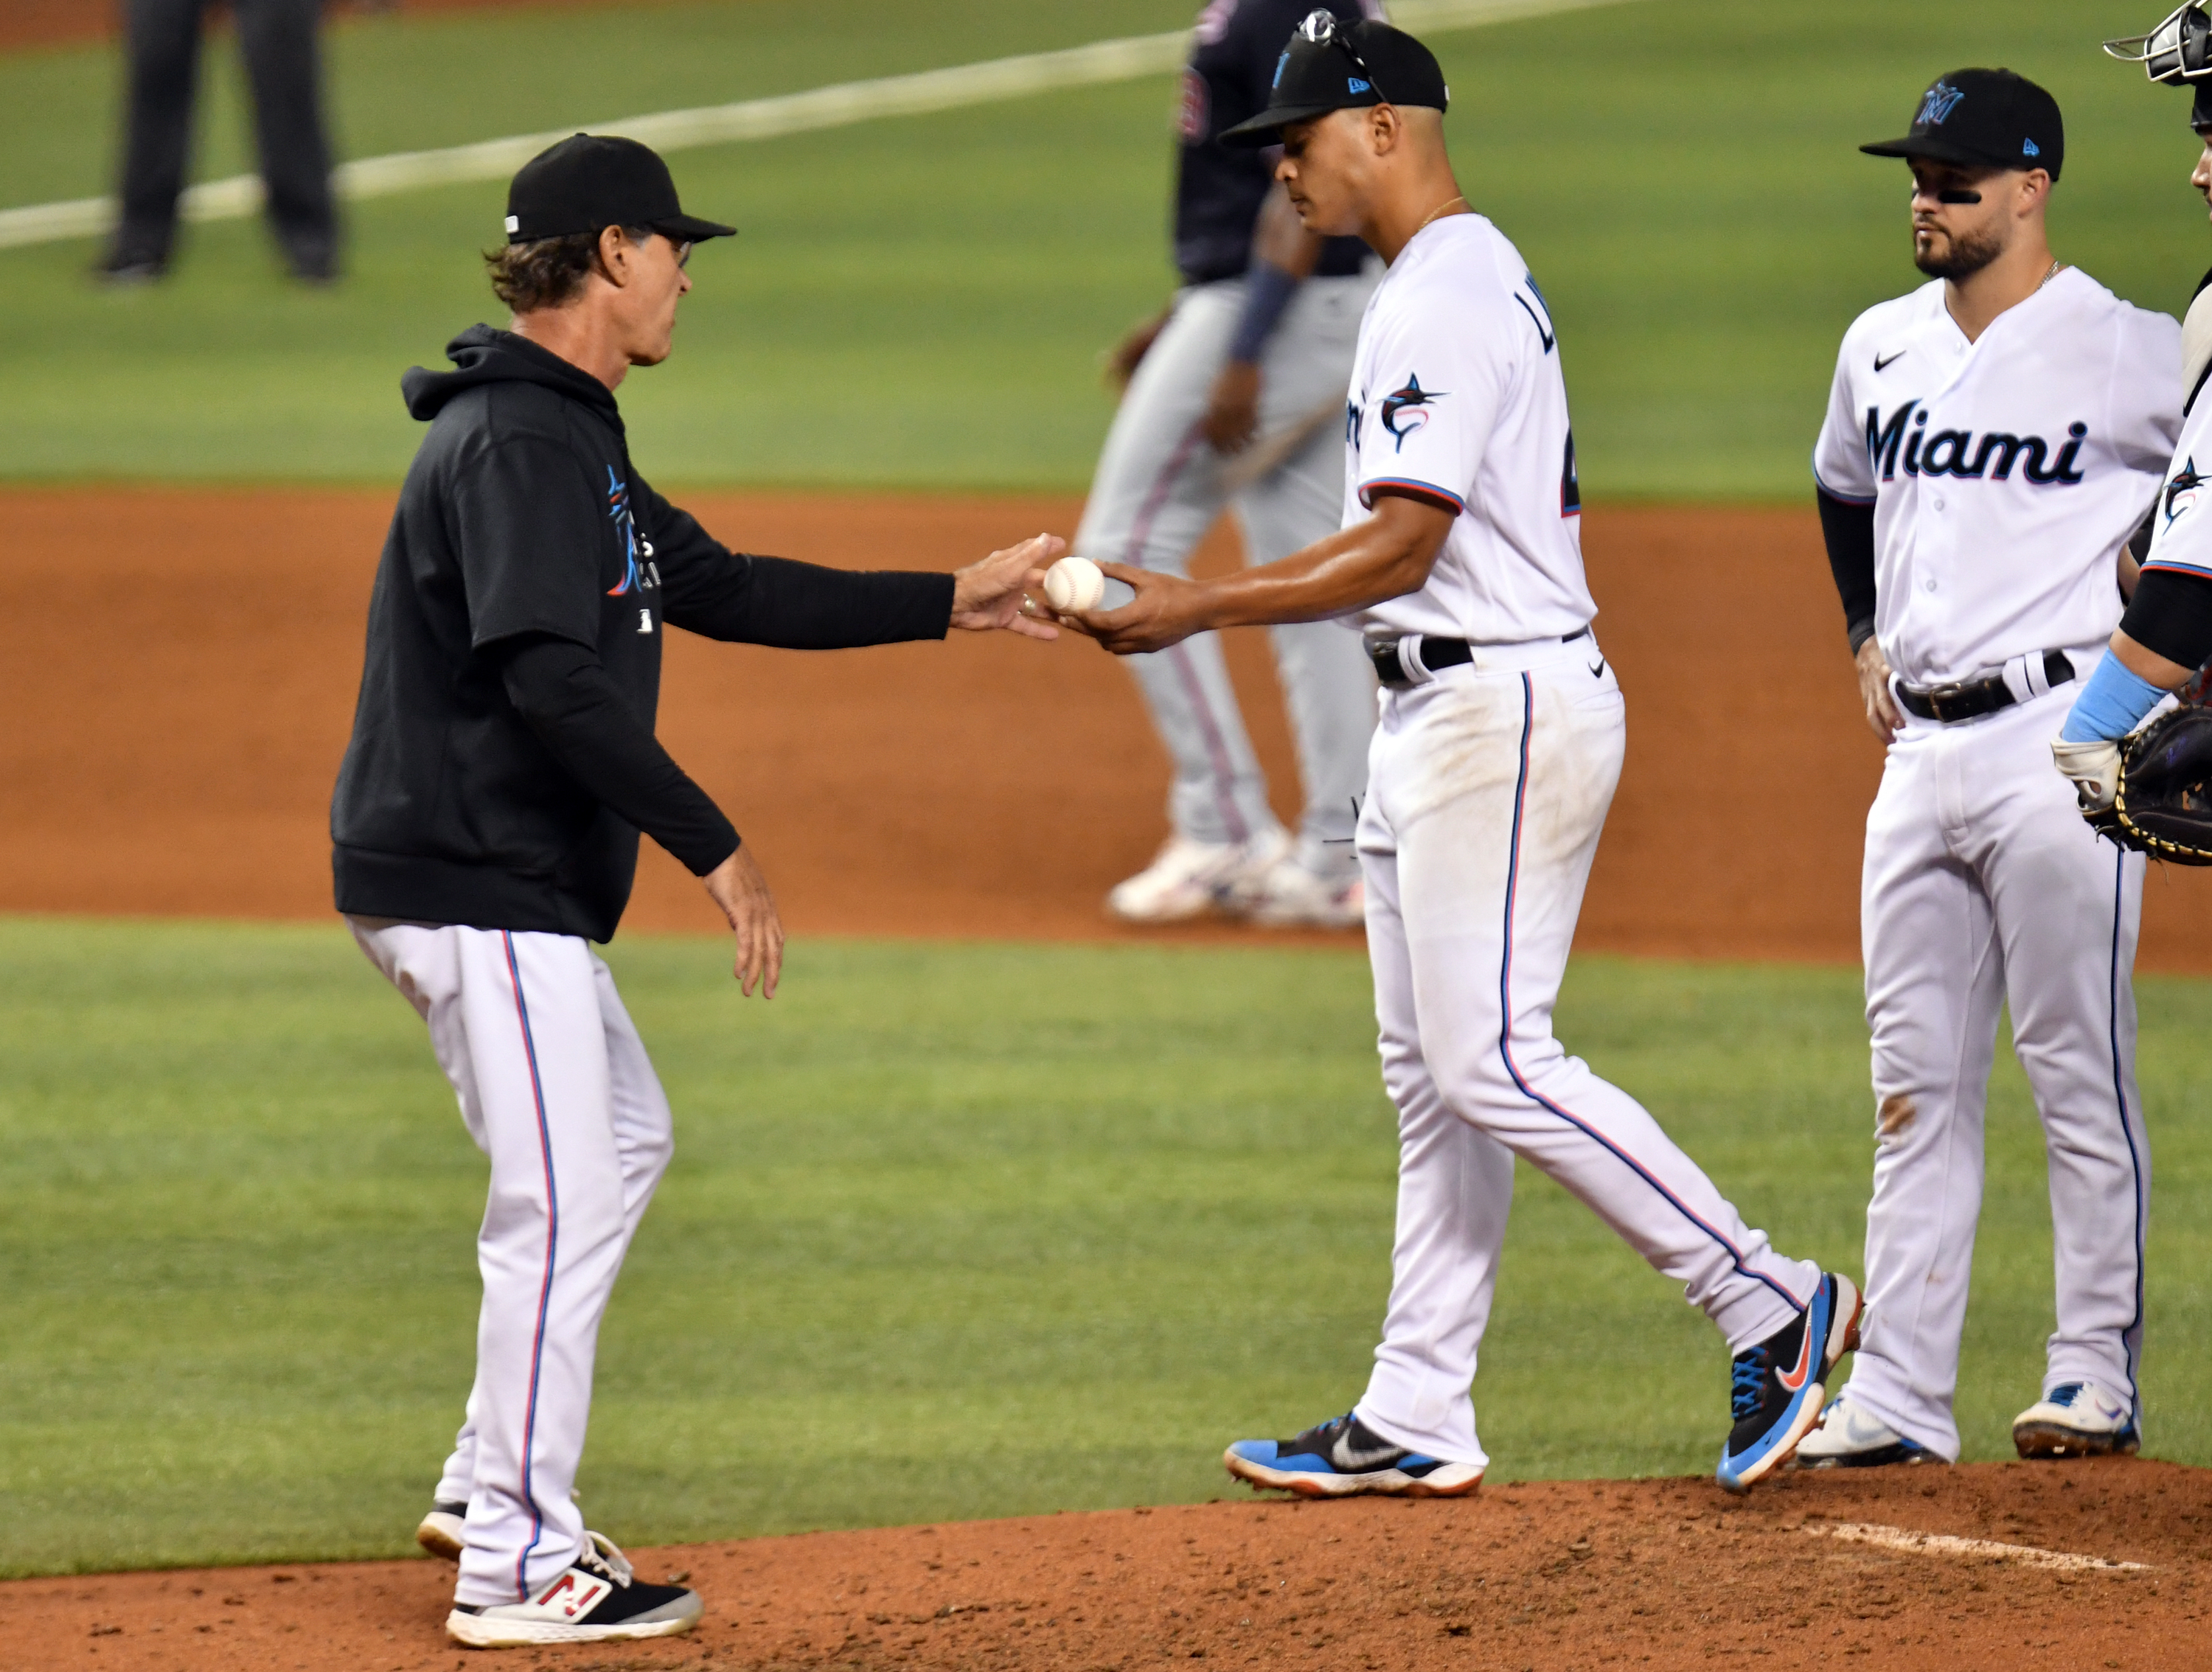 Miami Marlins manager Don Mattingly takes the ball from starting pitcher Jesus Luzardo (44) during the fifth inning against the Washington Nationals at loanDepot Park